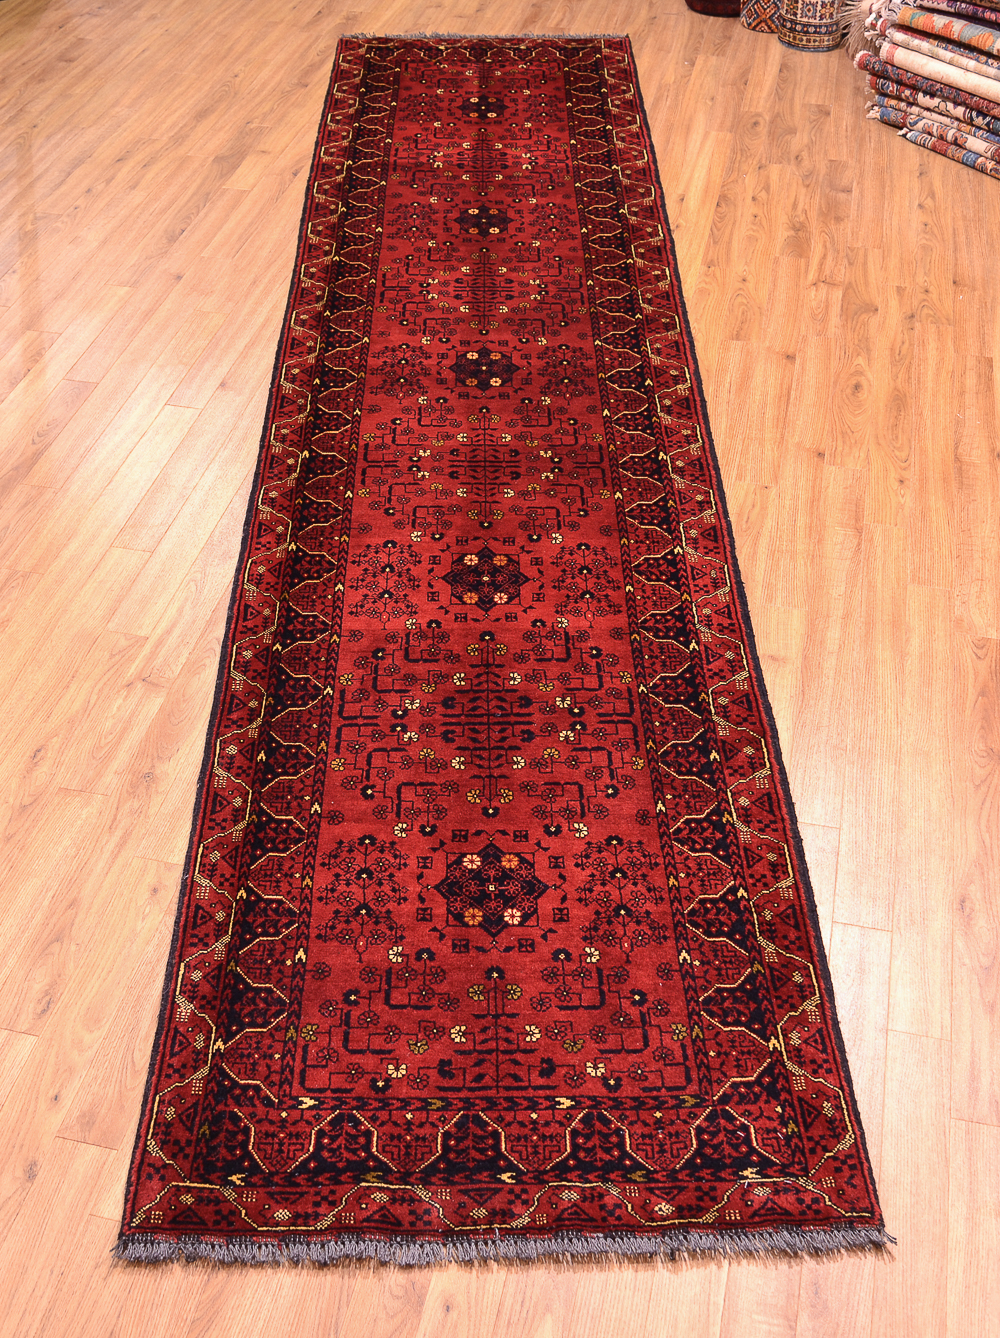 Kunduz Long Runner 3 73x0 84m Afghan Rug The Oriental